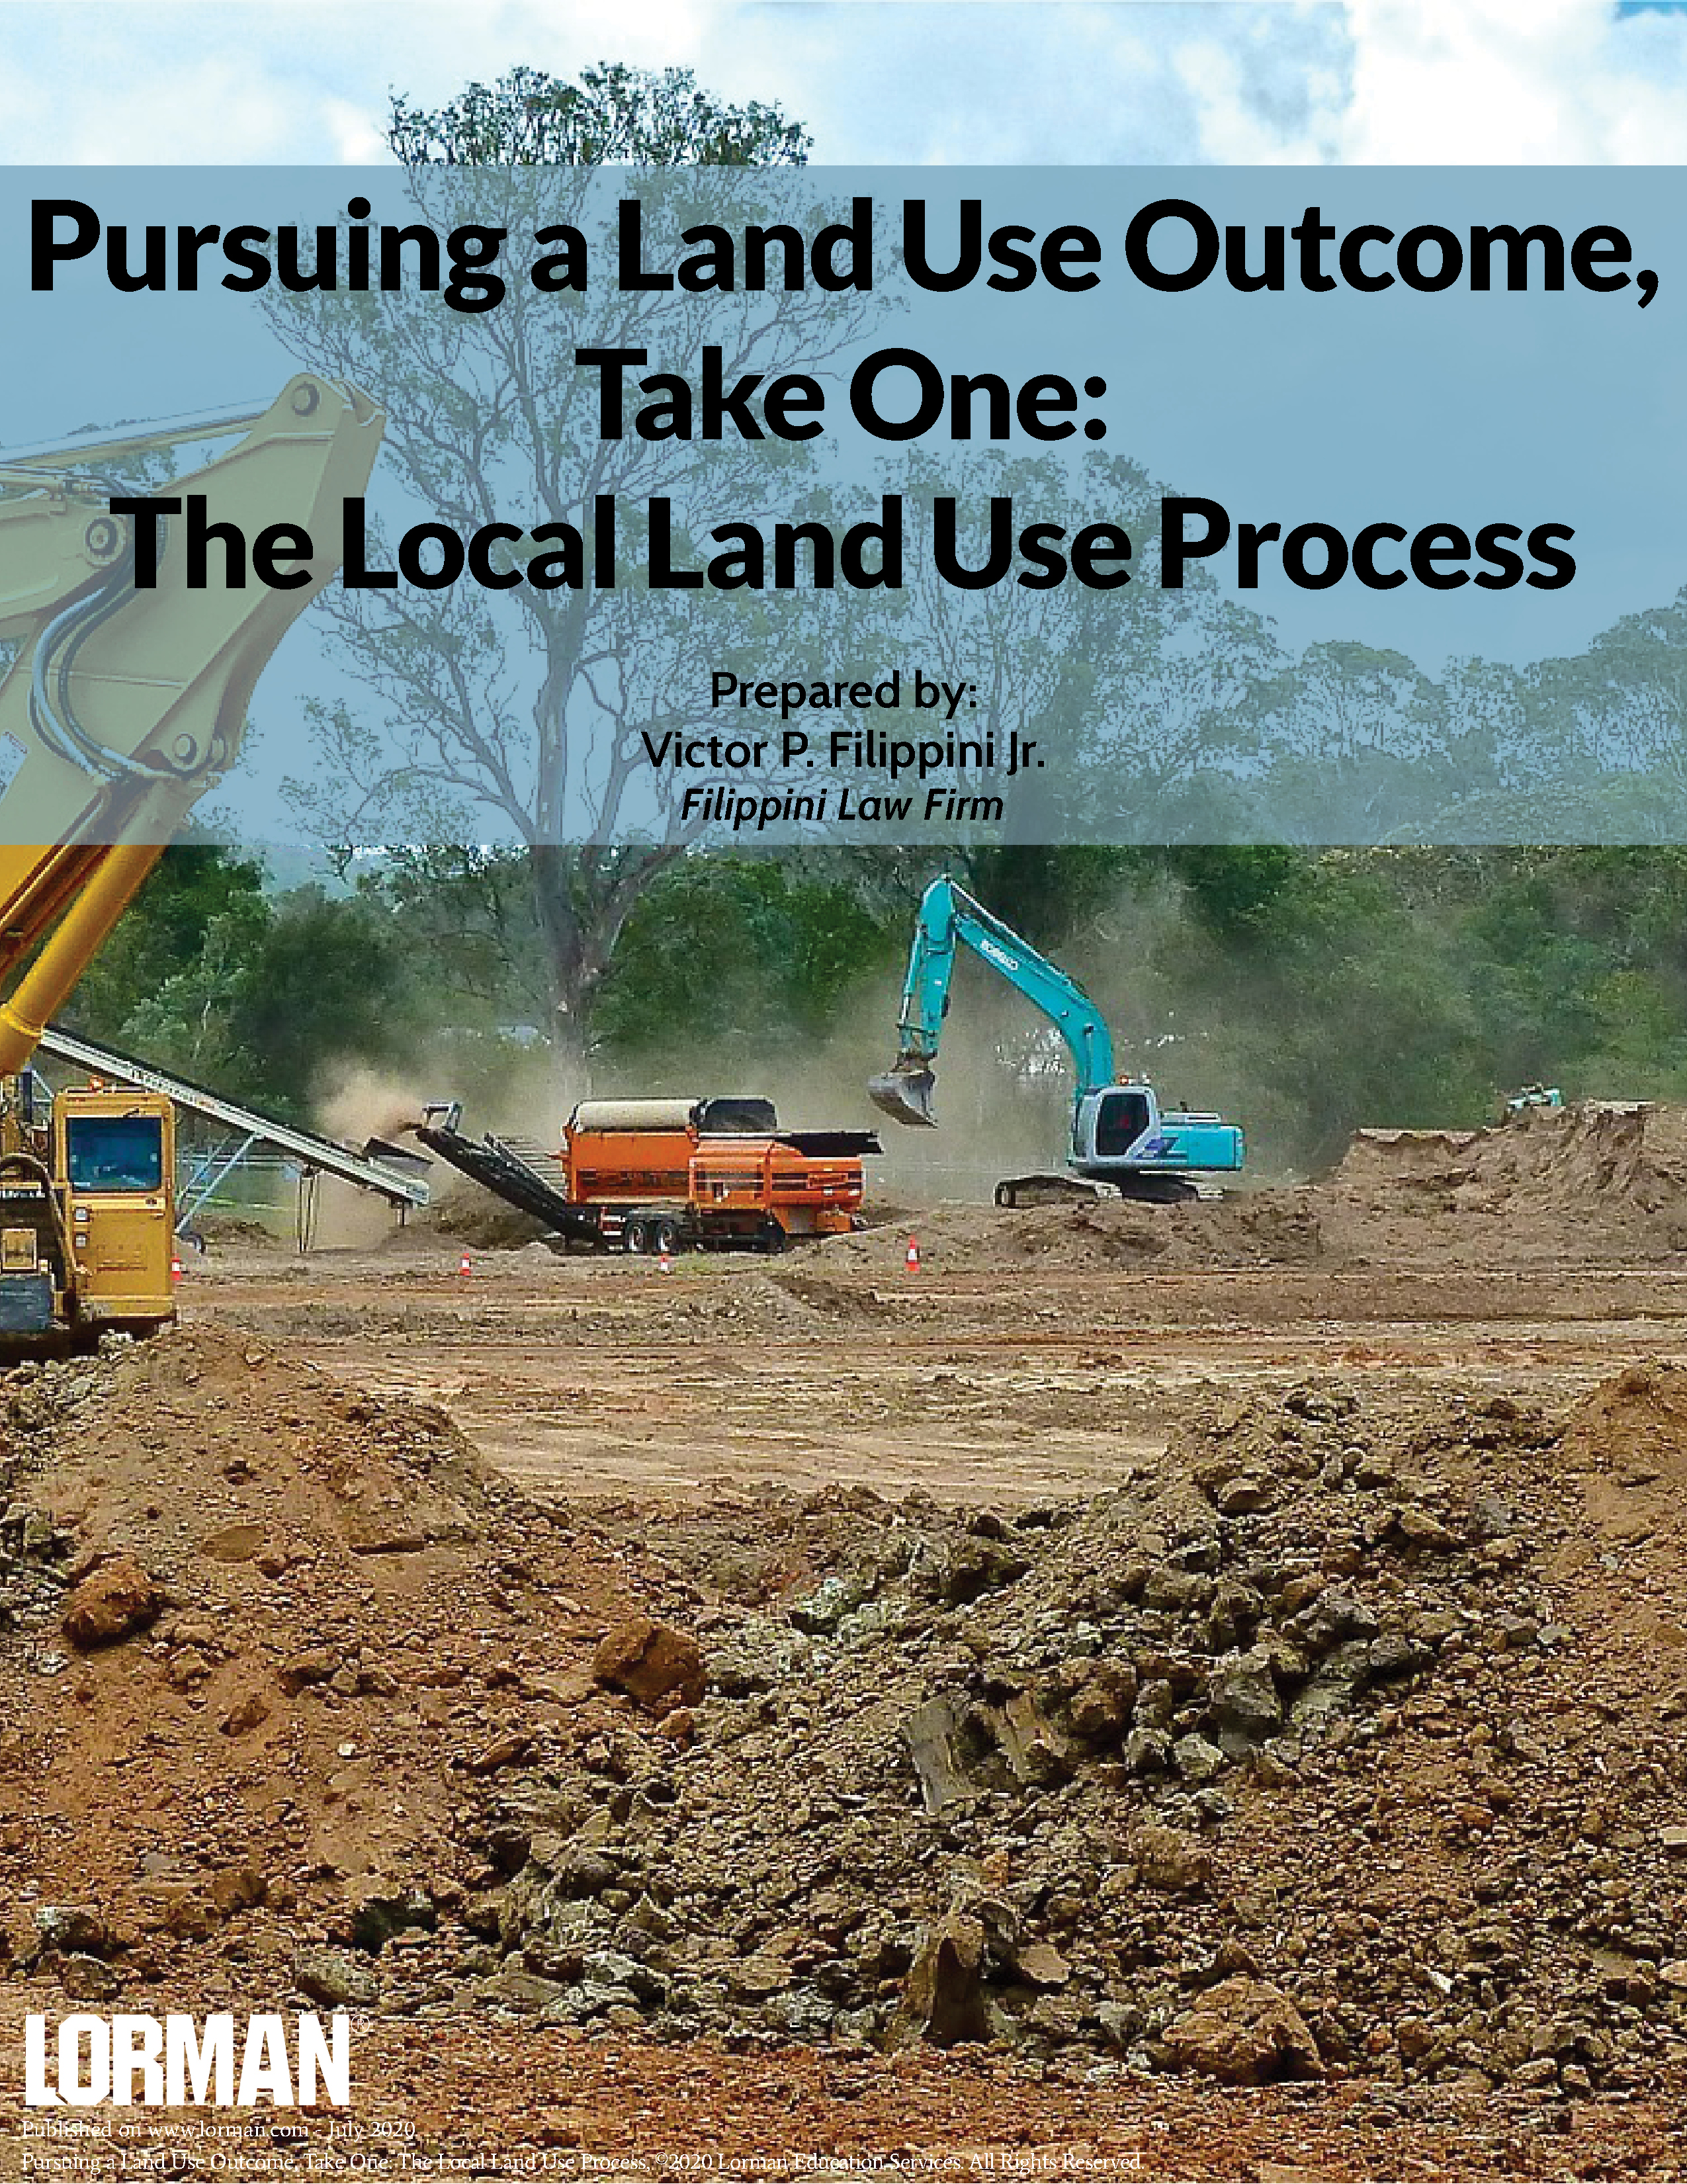 Pursuing a Land Use Outcome, Take One